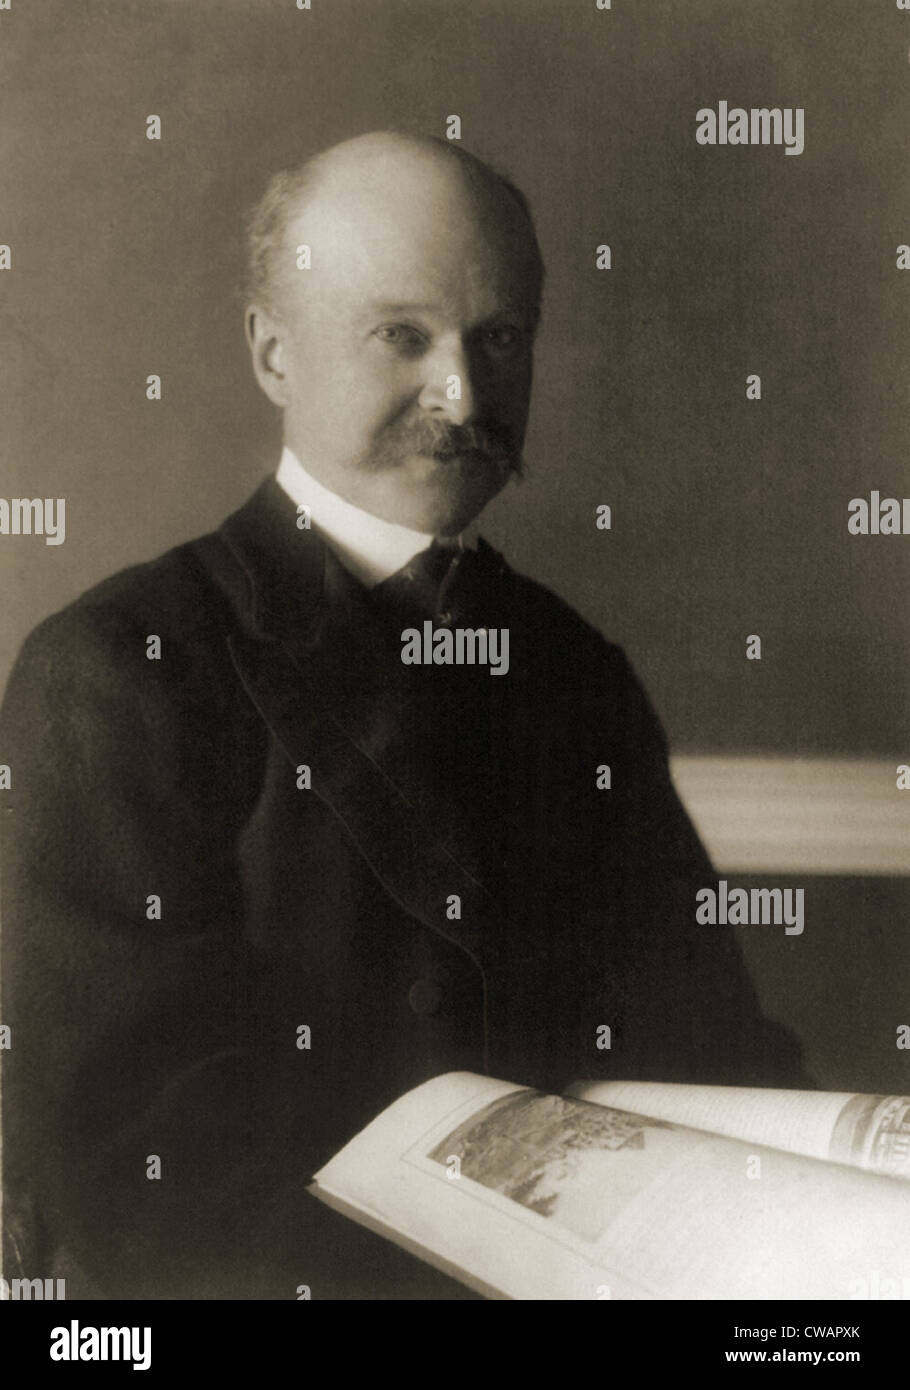 Charles Follen McKim (1847-1909), a partner in the prominent architectural firm McKim, Mead, and White, designed - Stock Image